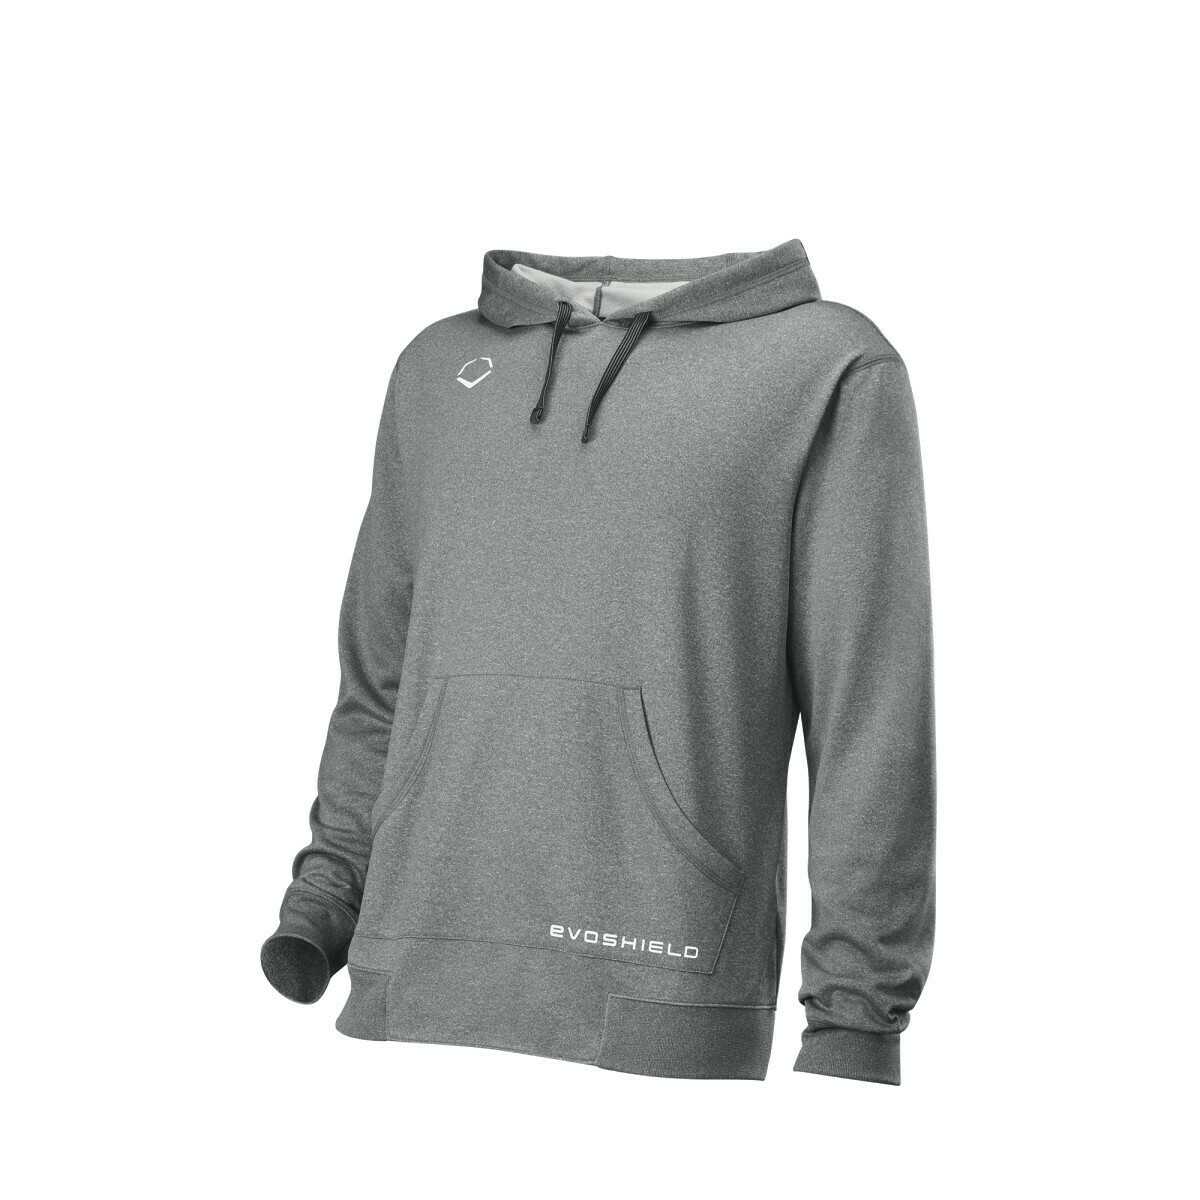 Evo Shield Pro Team Fleece Hoodie